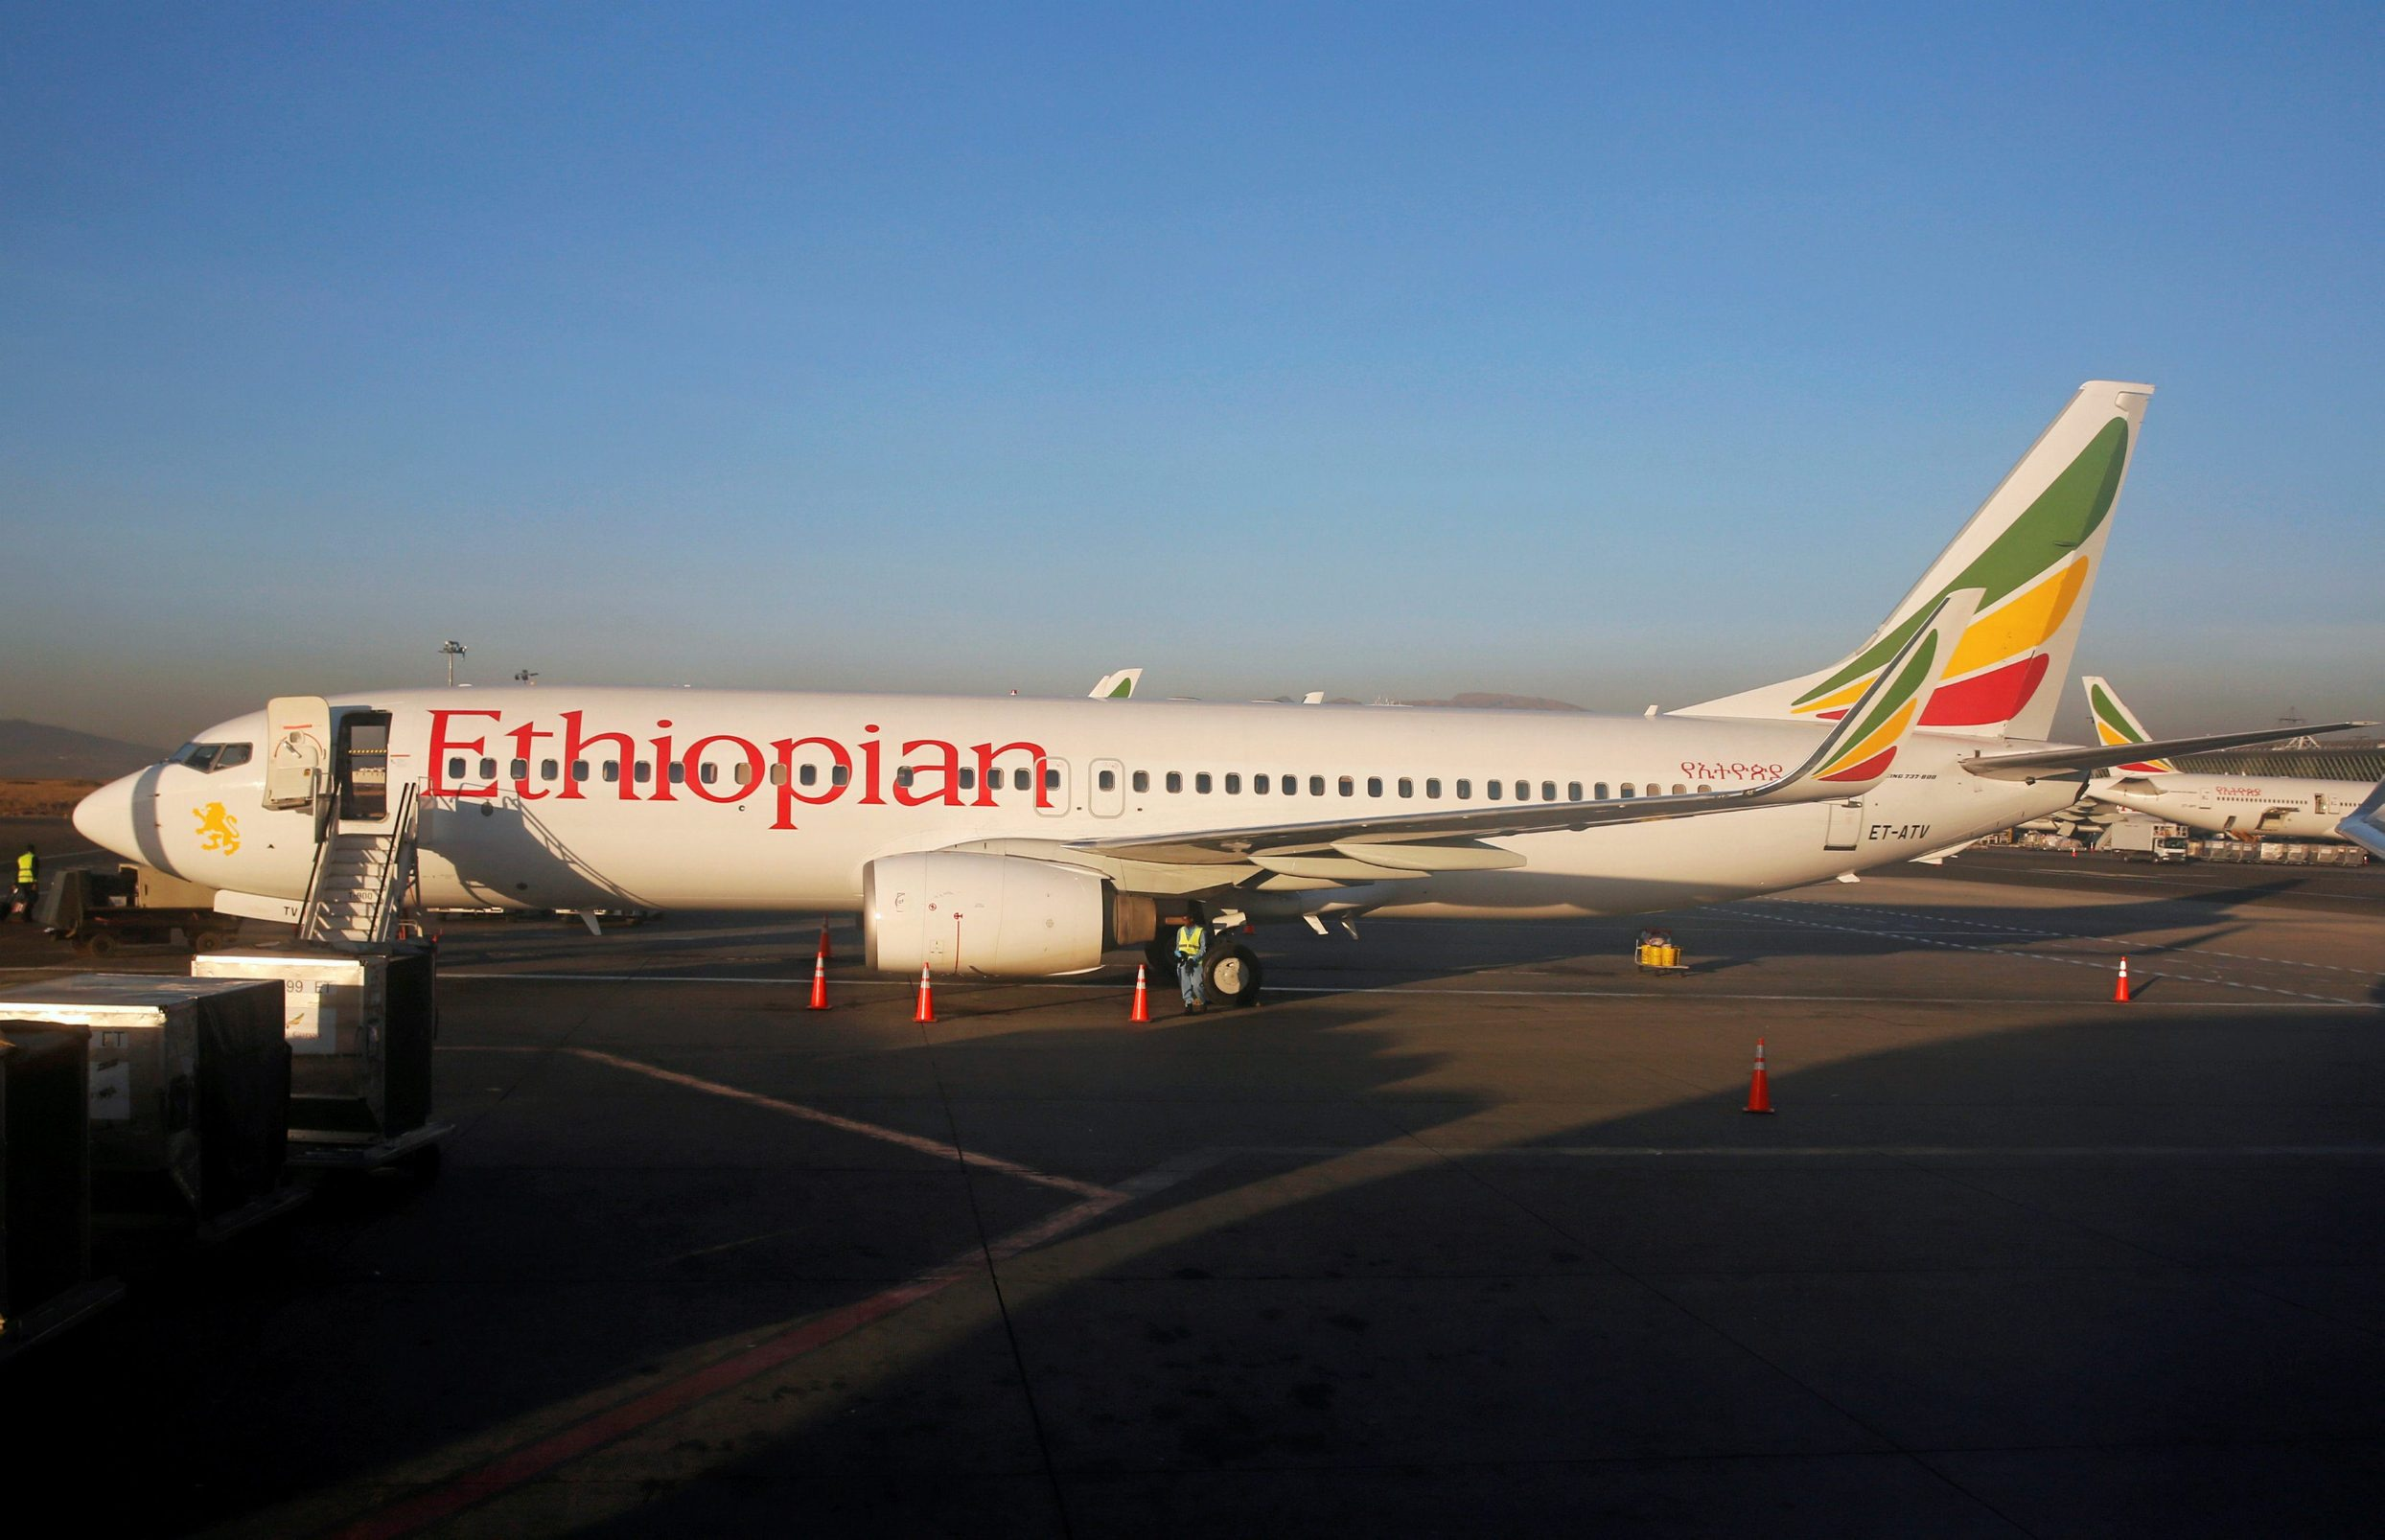 2019-03-10T082936Z_1304083867_RC112284ABF0_RTRMADP_3_ETHIOPIAN-AIRLINE